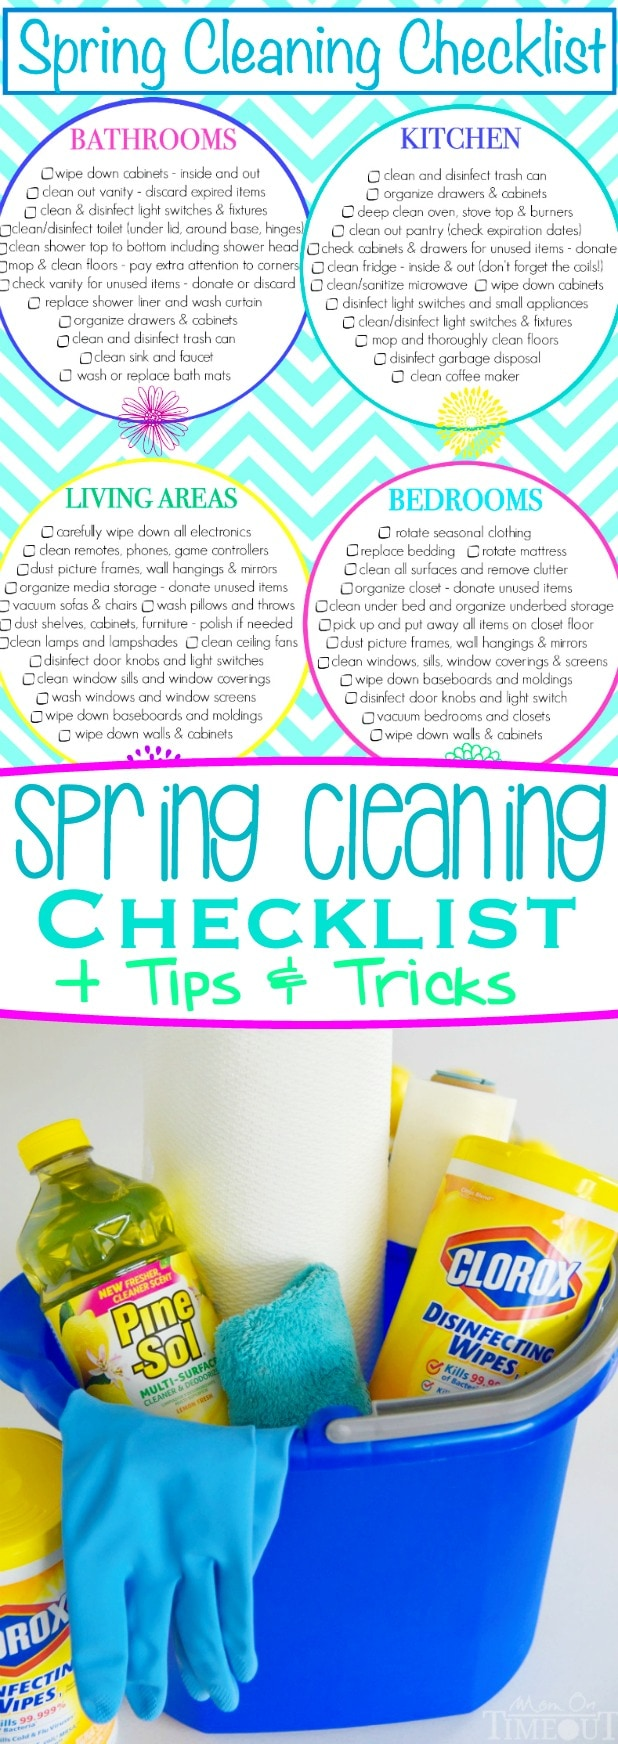 Spring Cleaning Checklist + Tips and Tricks - Mom On Timeout